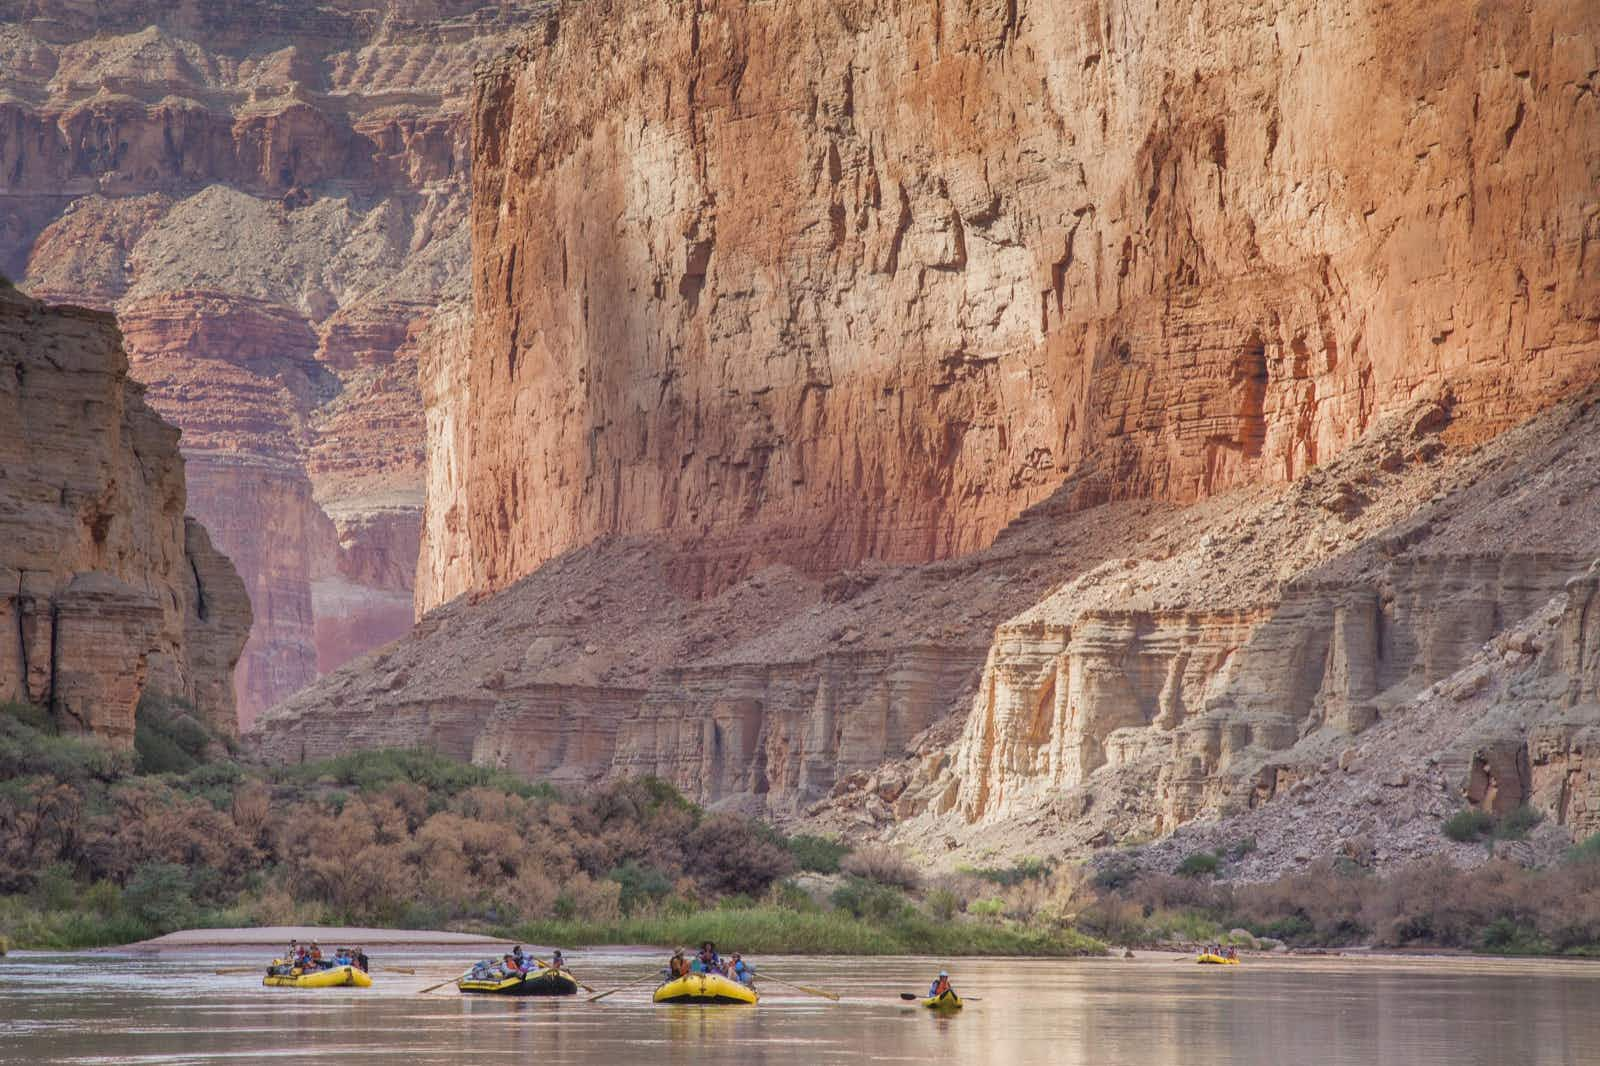 Whitewater rafts and a kayak drift on a calm part of the Colorado River in the Grand Canyon, as sheer rock walls fill the frame behind.